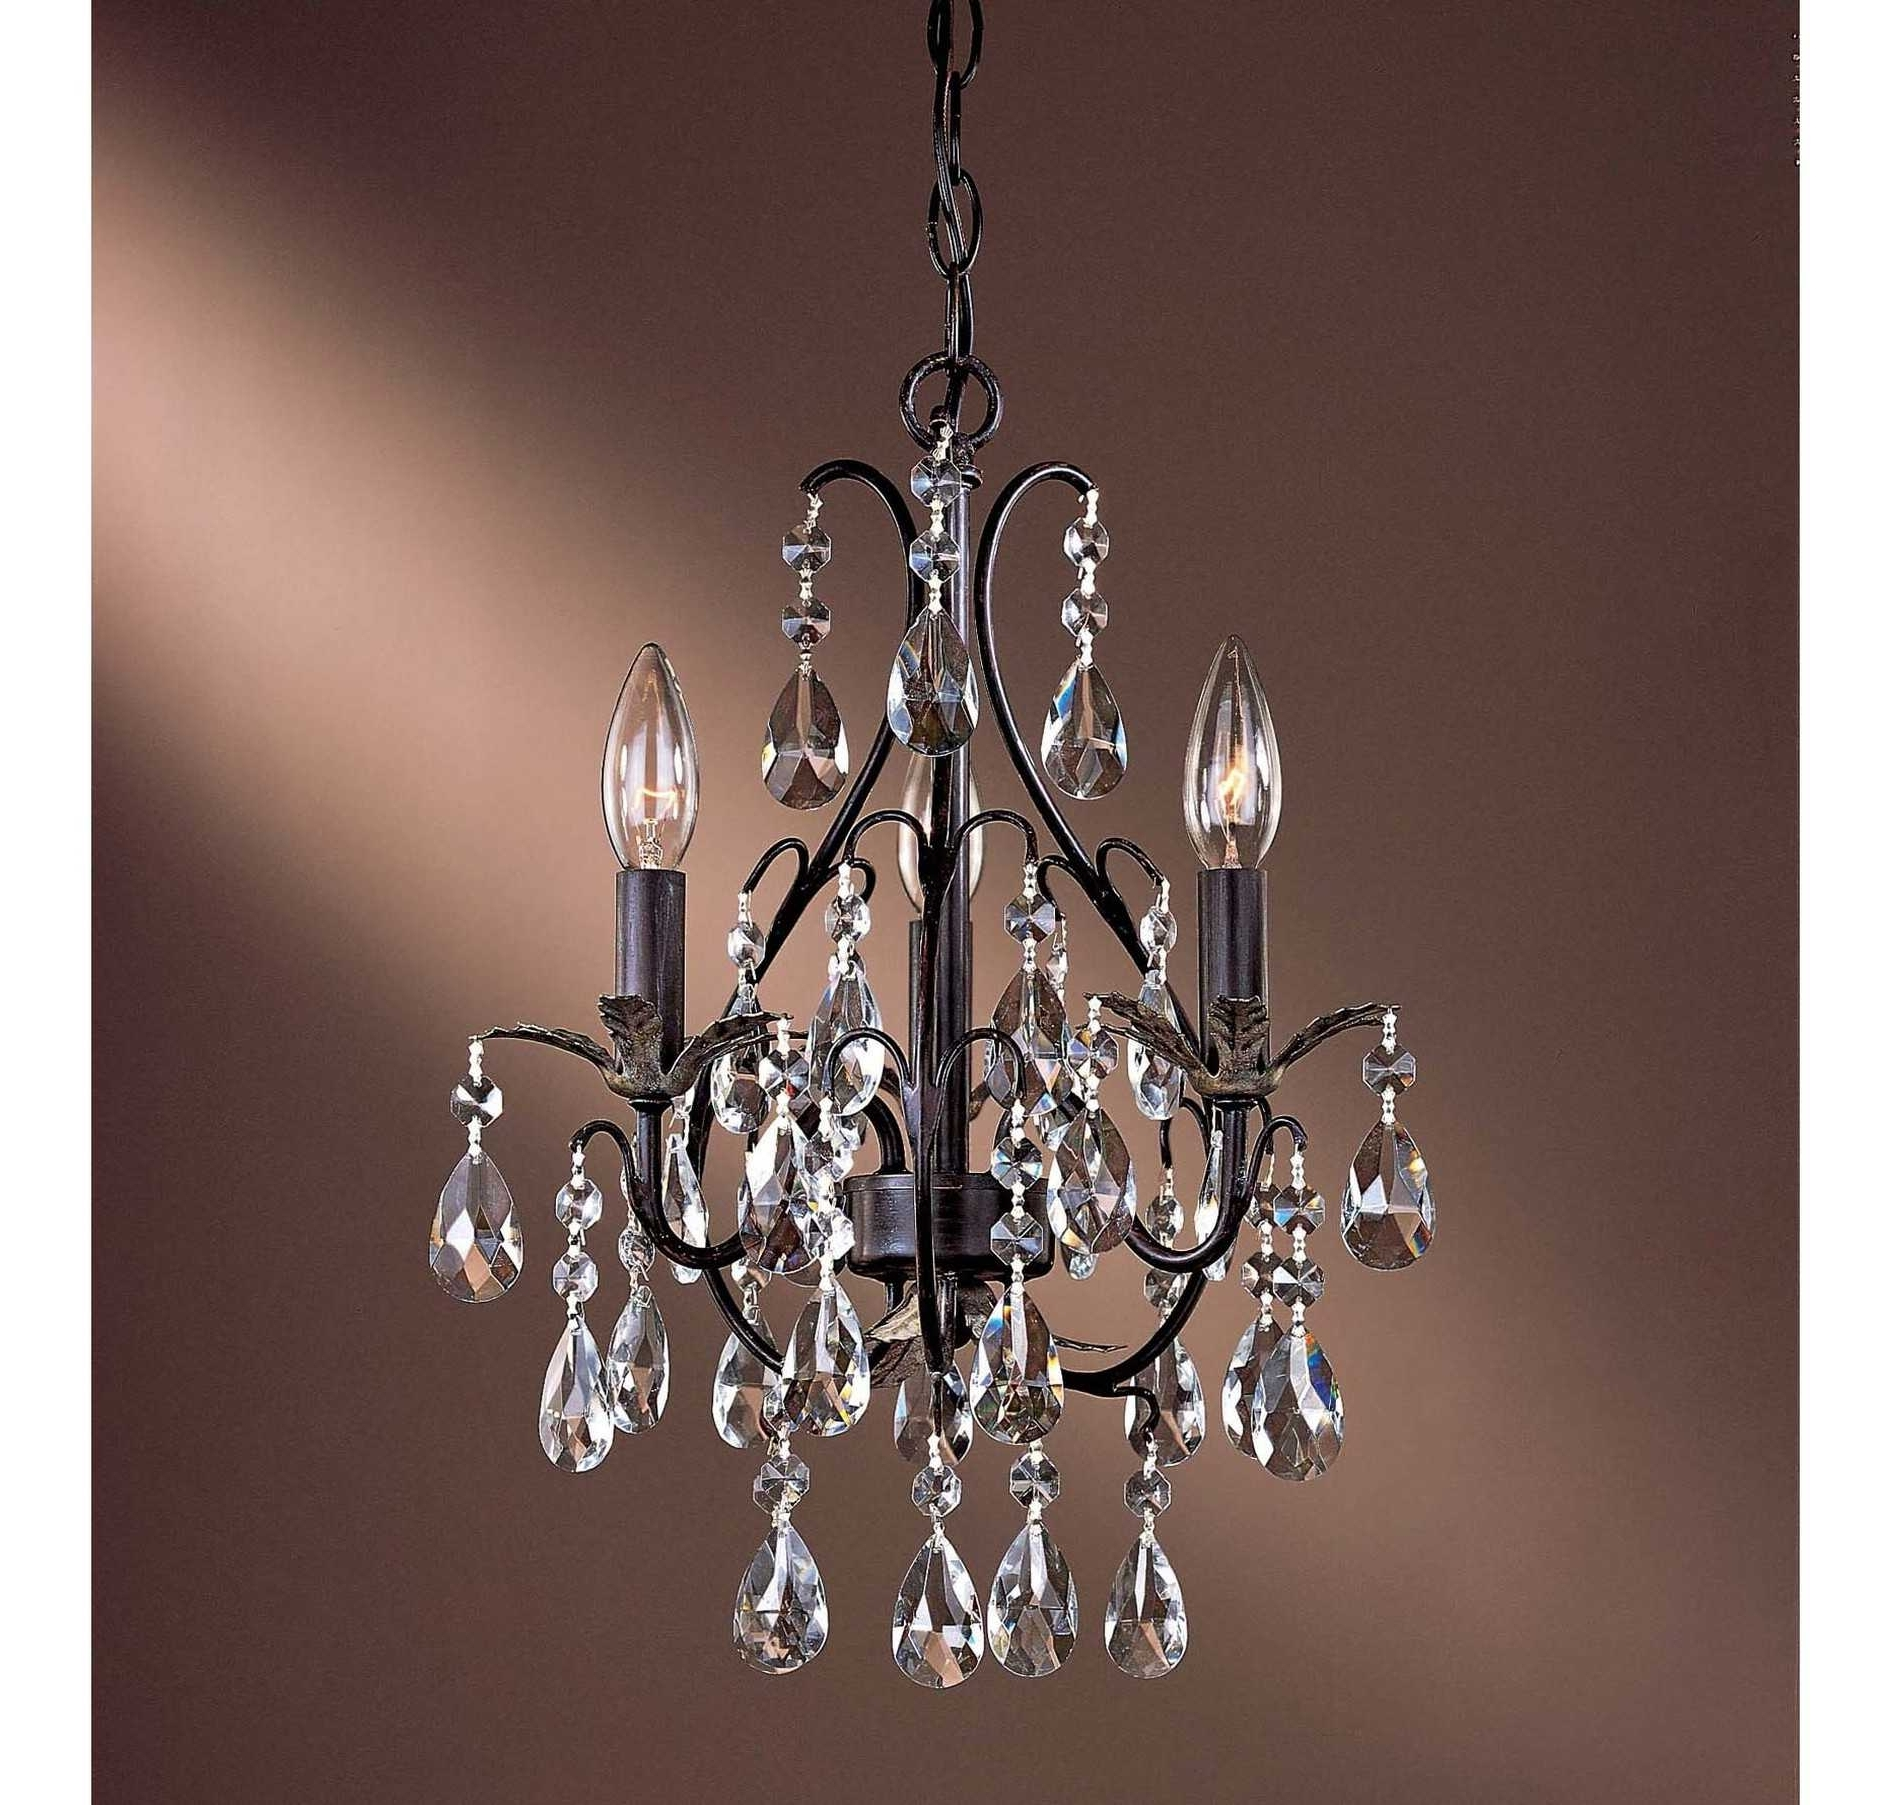 Stunning Mini Crystal Chandeliers For Bedrooms Trends With Small Regarding 2018 Mini Crystal Chandeliers (View 9 of 20)